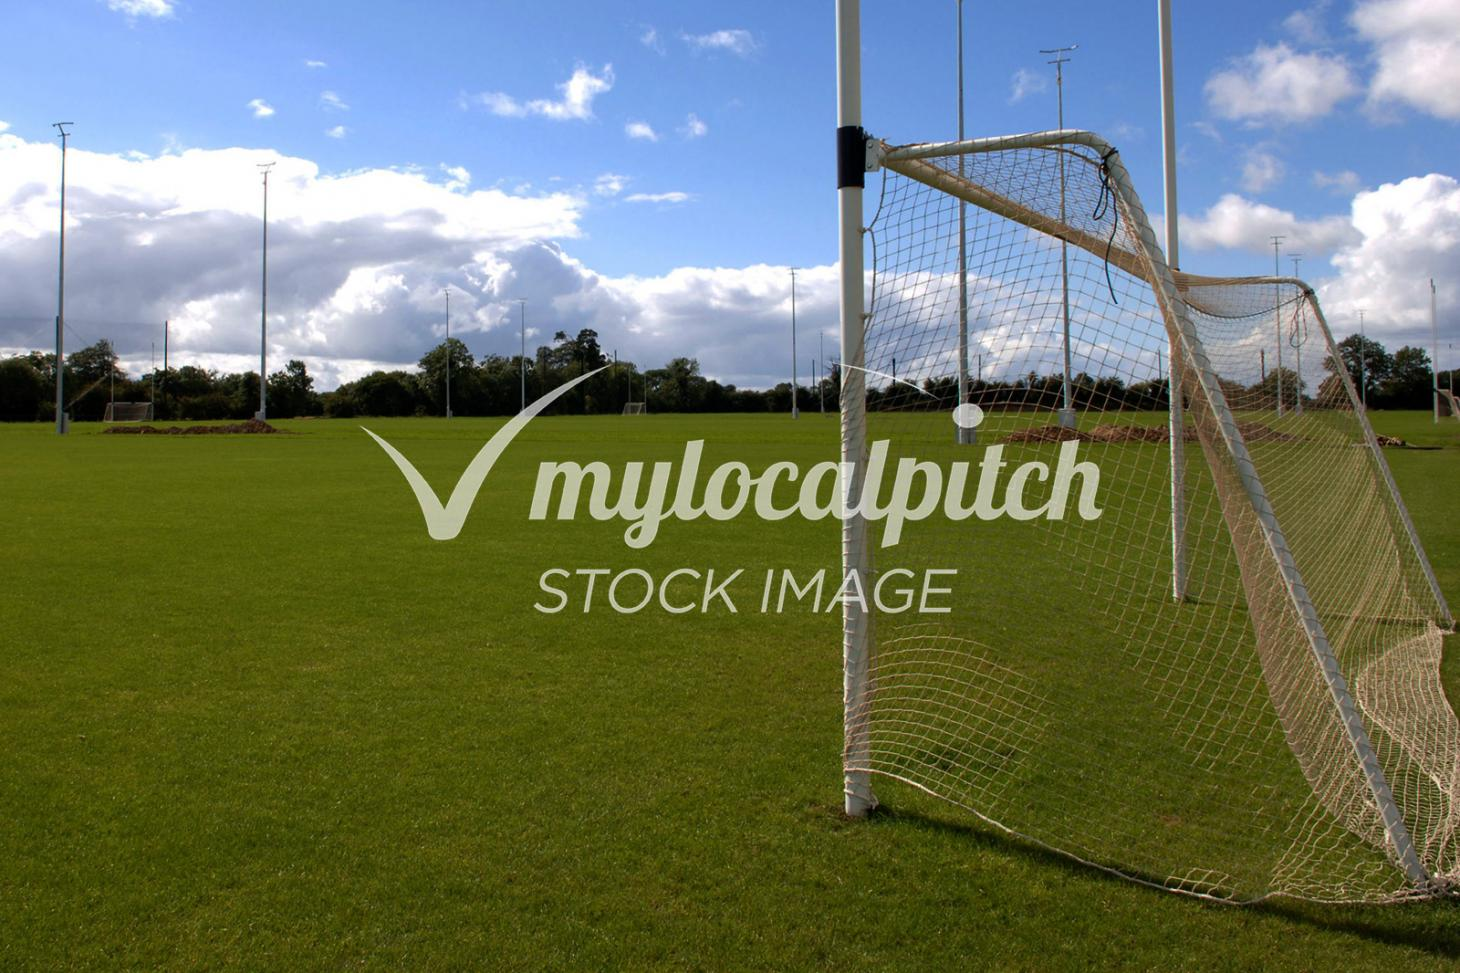 Lawless Memorial Park Full size | 3G Astroturf gaa pitch